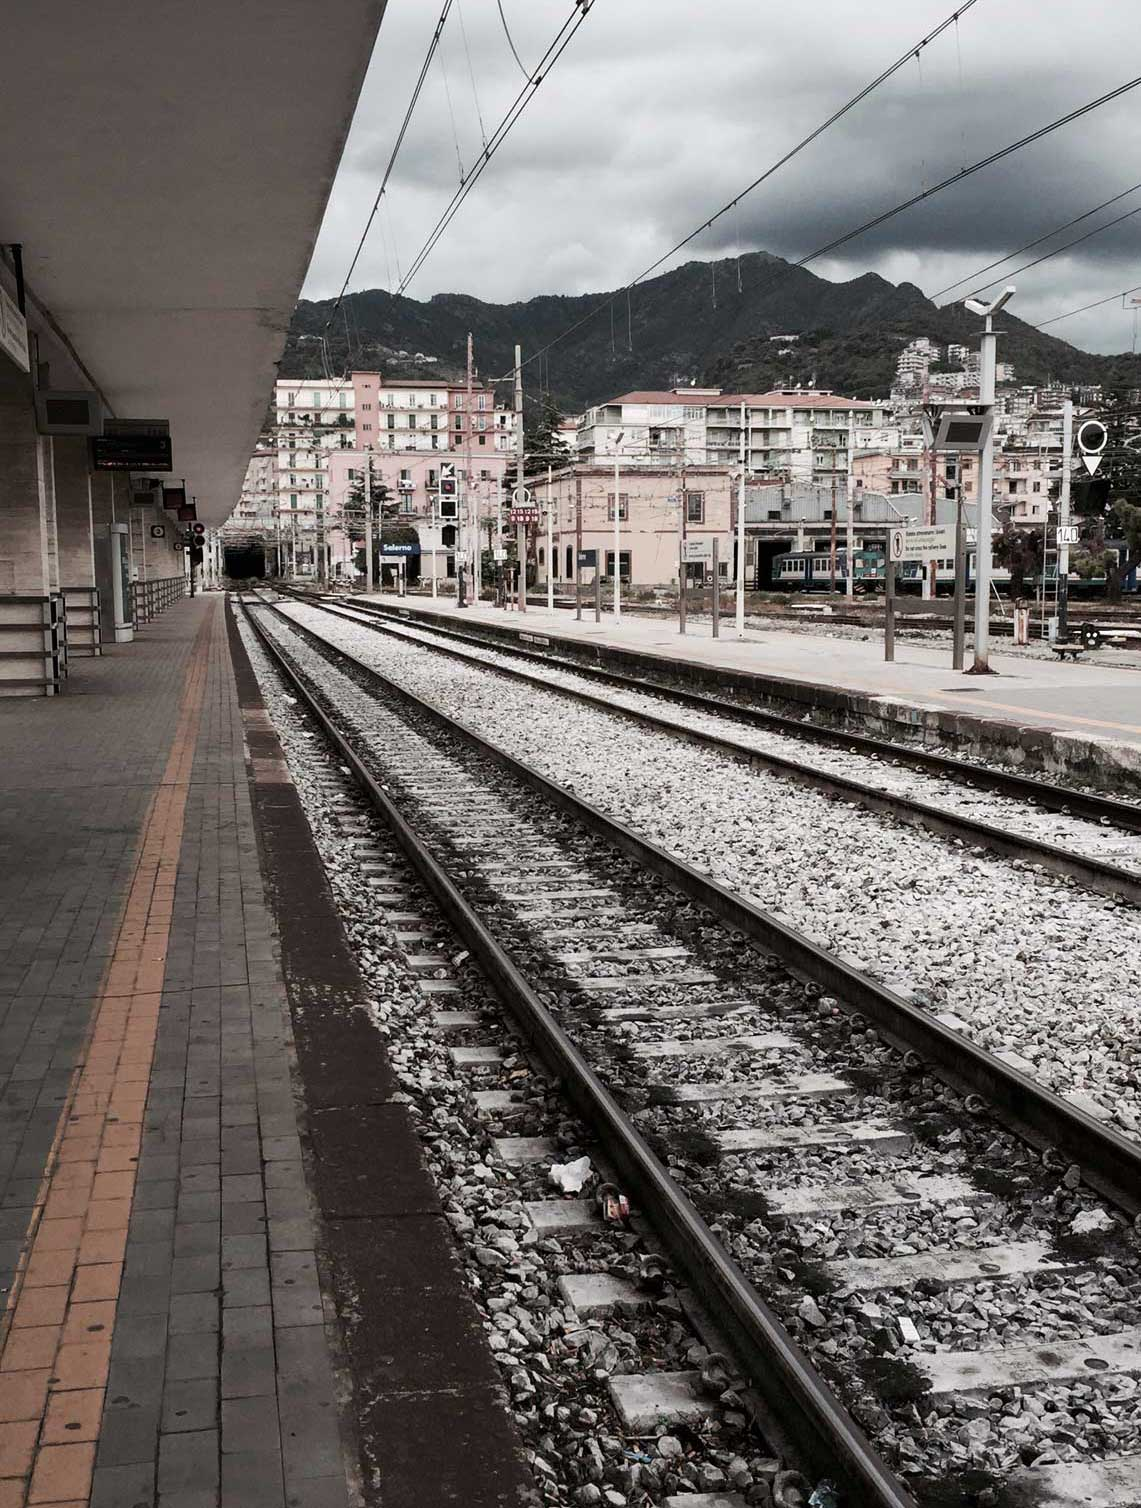 Waiting for the train, Salerno, Italy